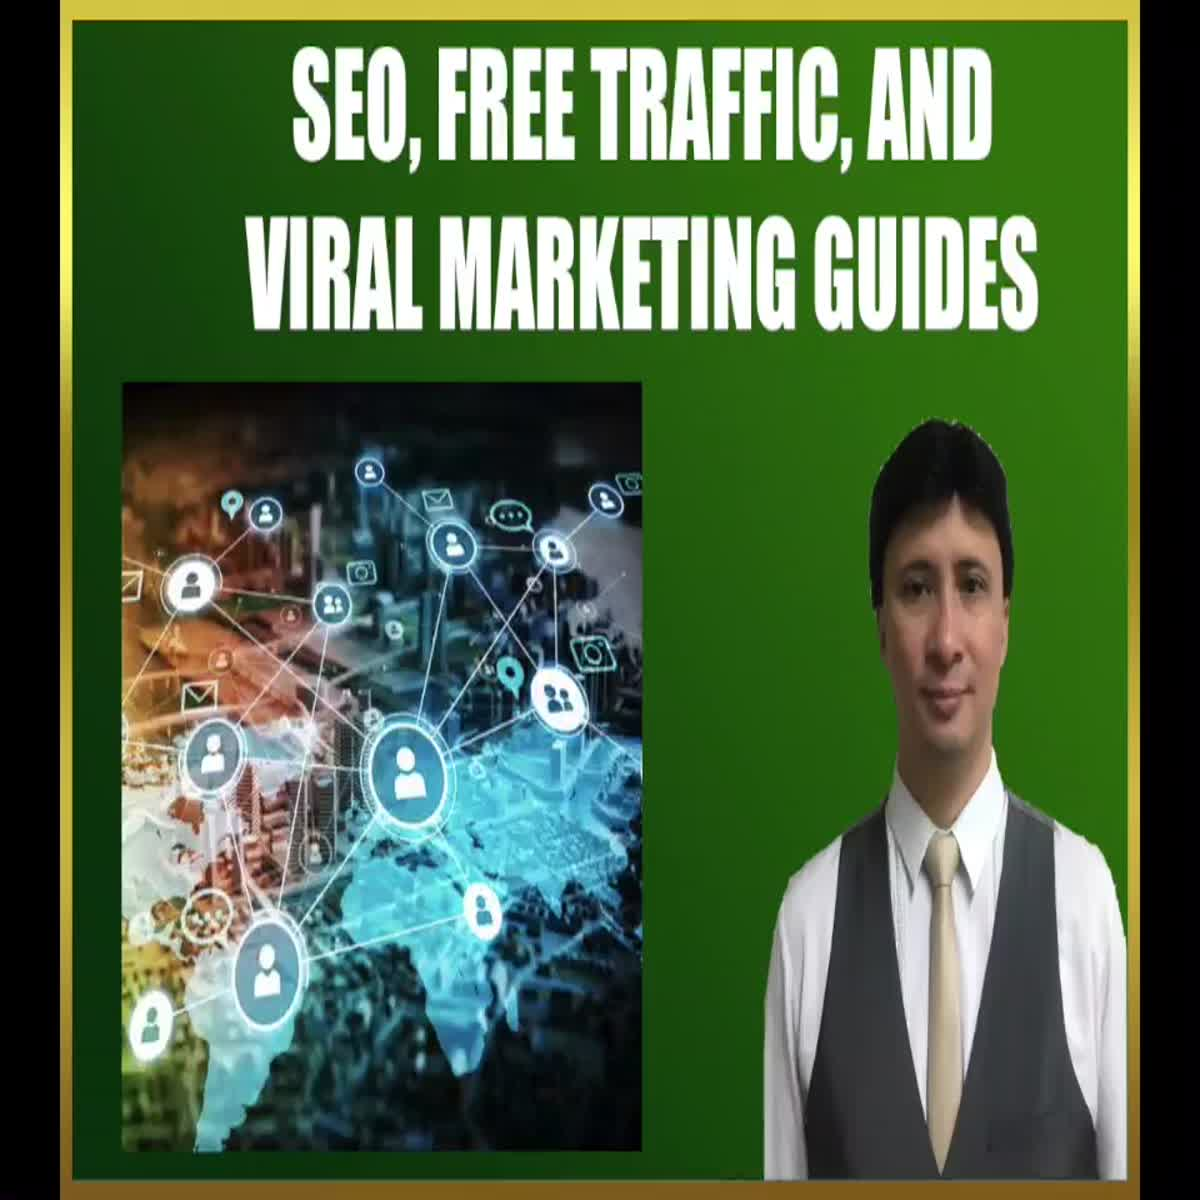 Receive SEO, FREE traffic, and VIRAL Marketing Guides!